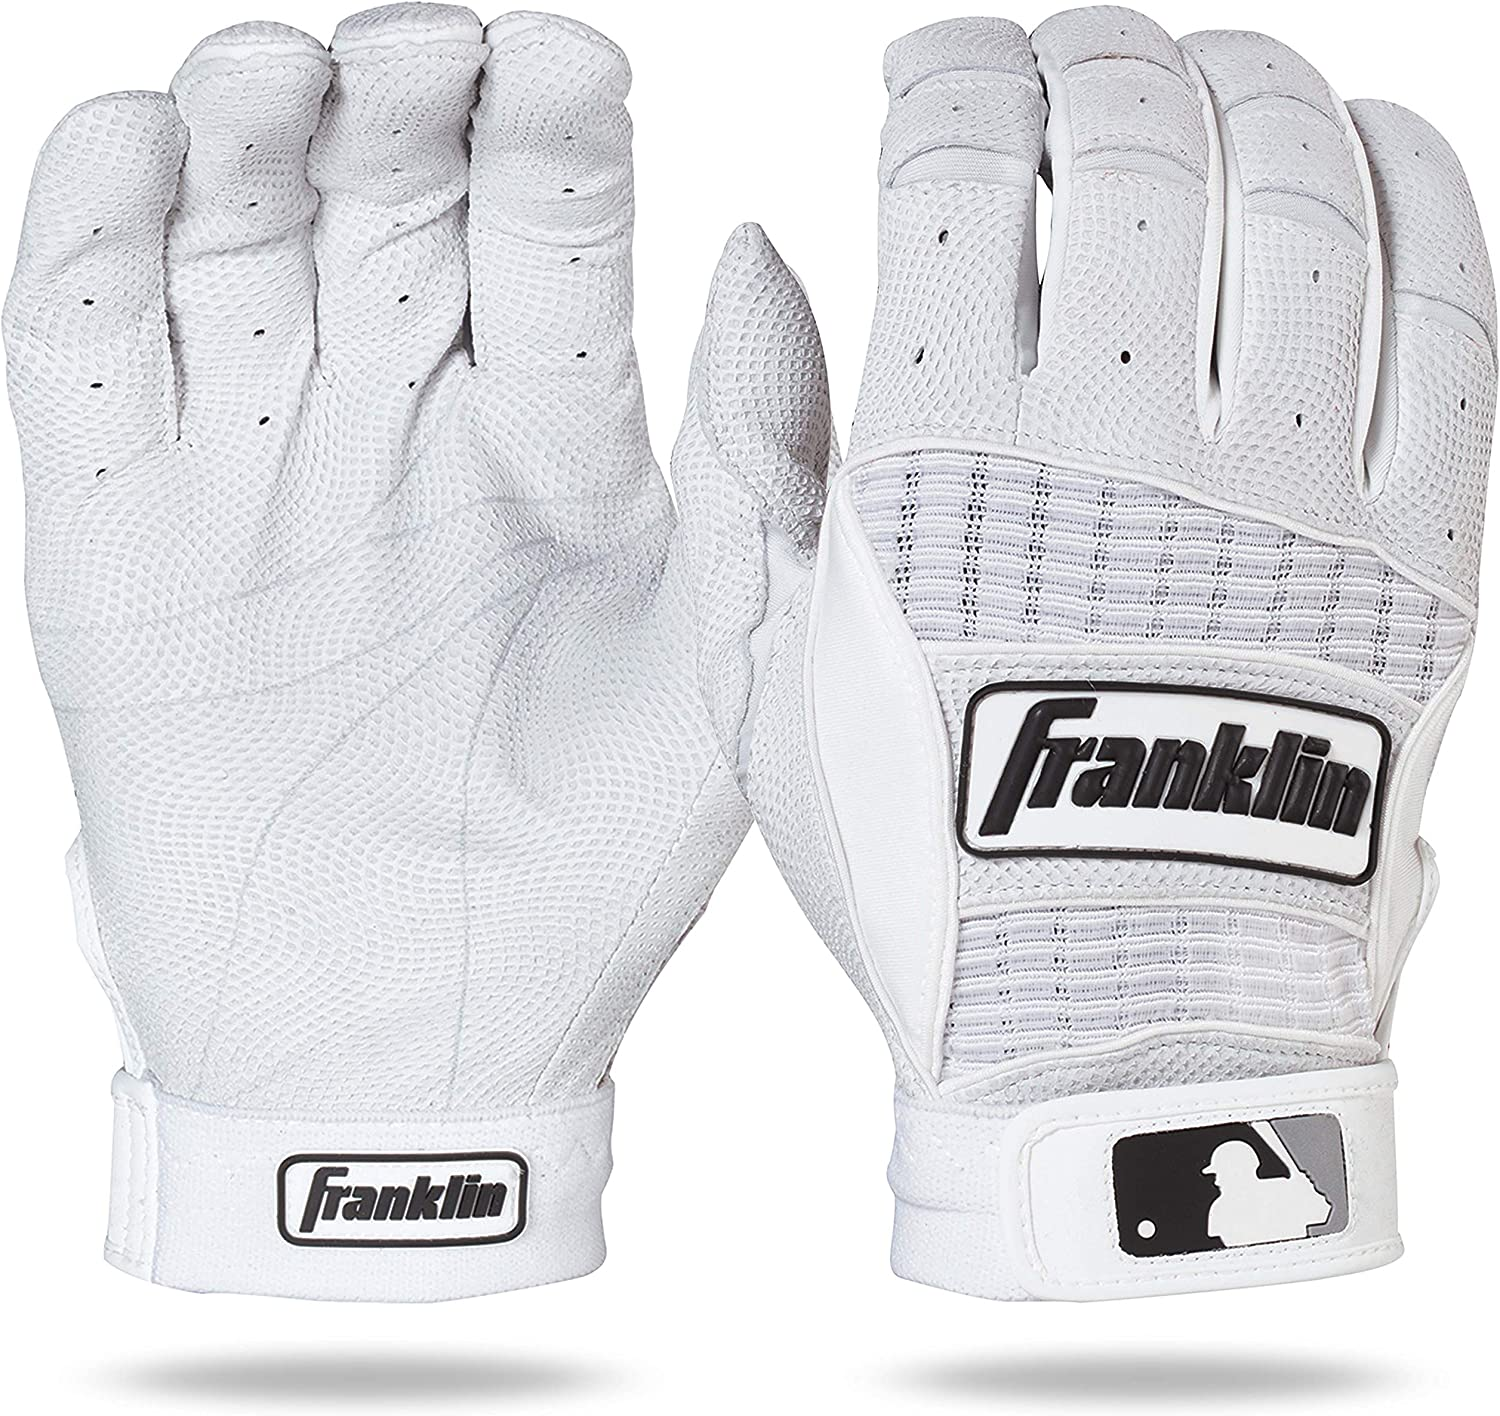 specialty shop Franklin Sports Popular shop is the lowest price challenge Neo Classic II Series Batting Gloves Baseball